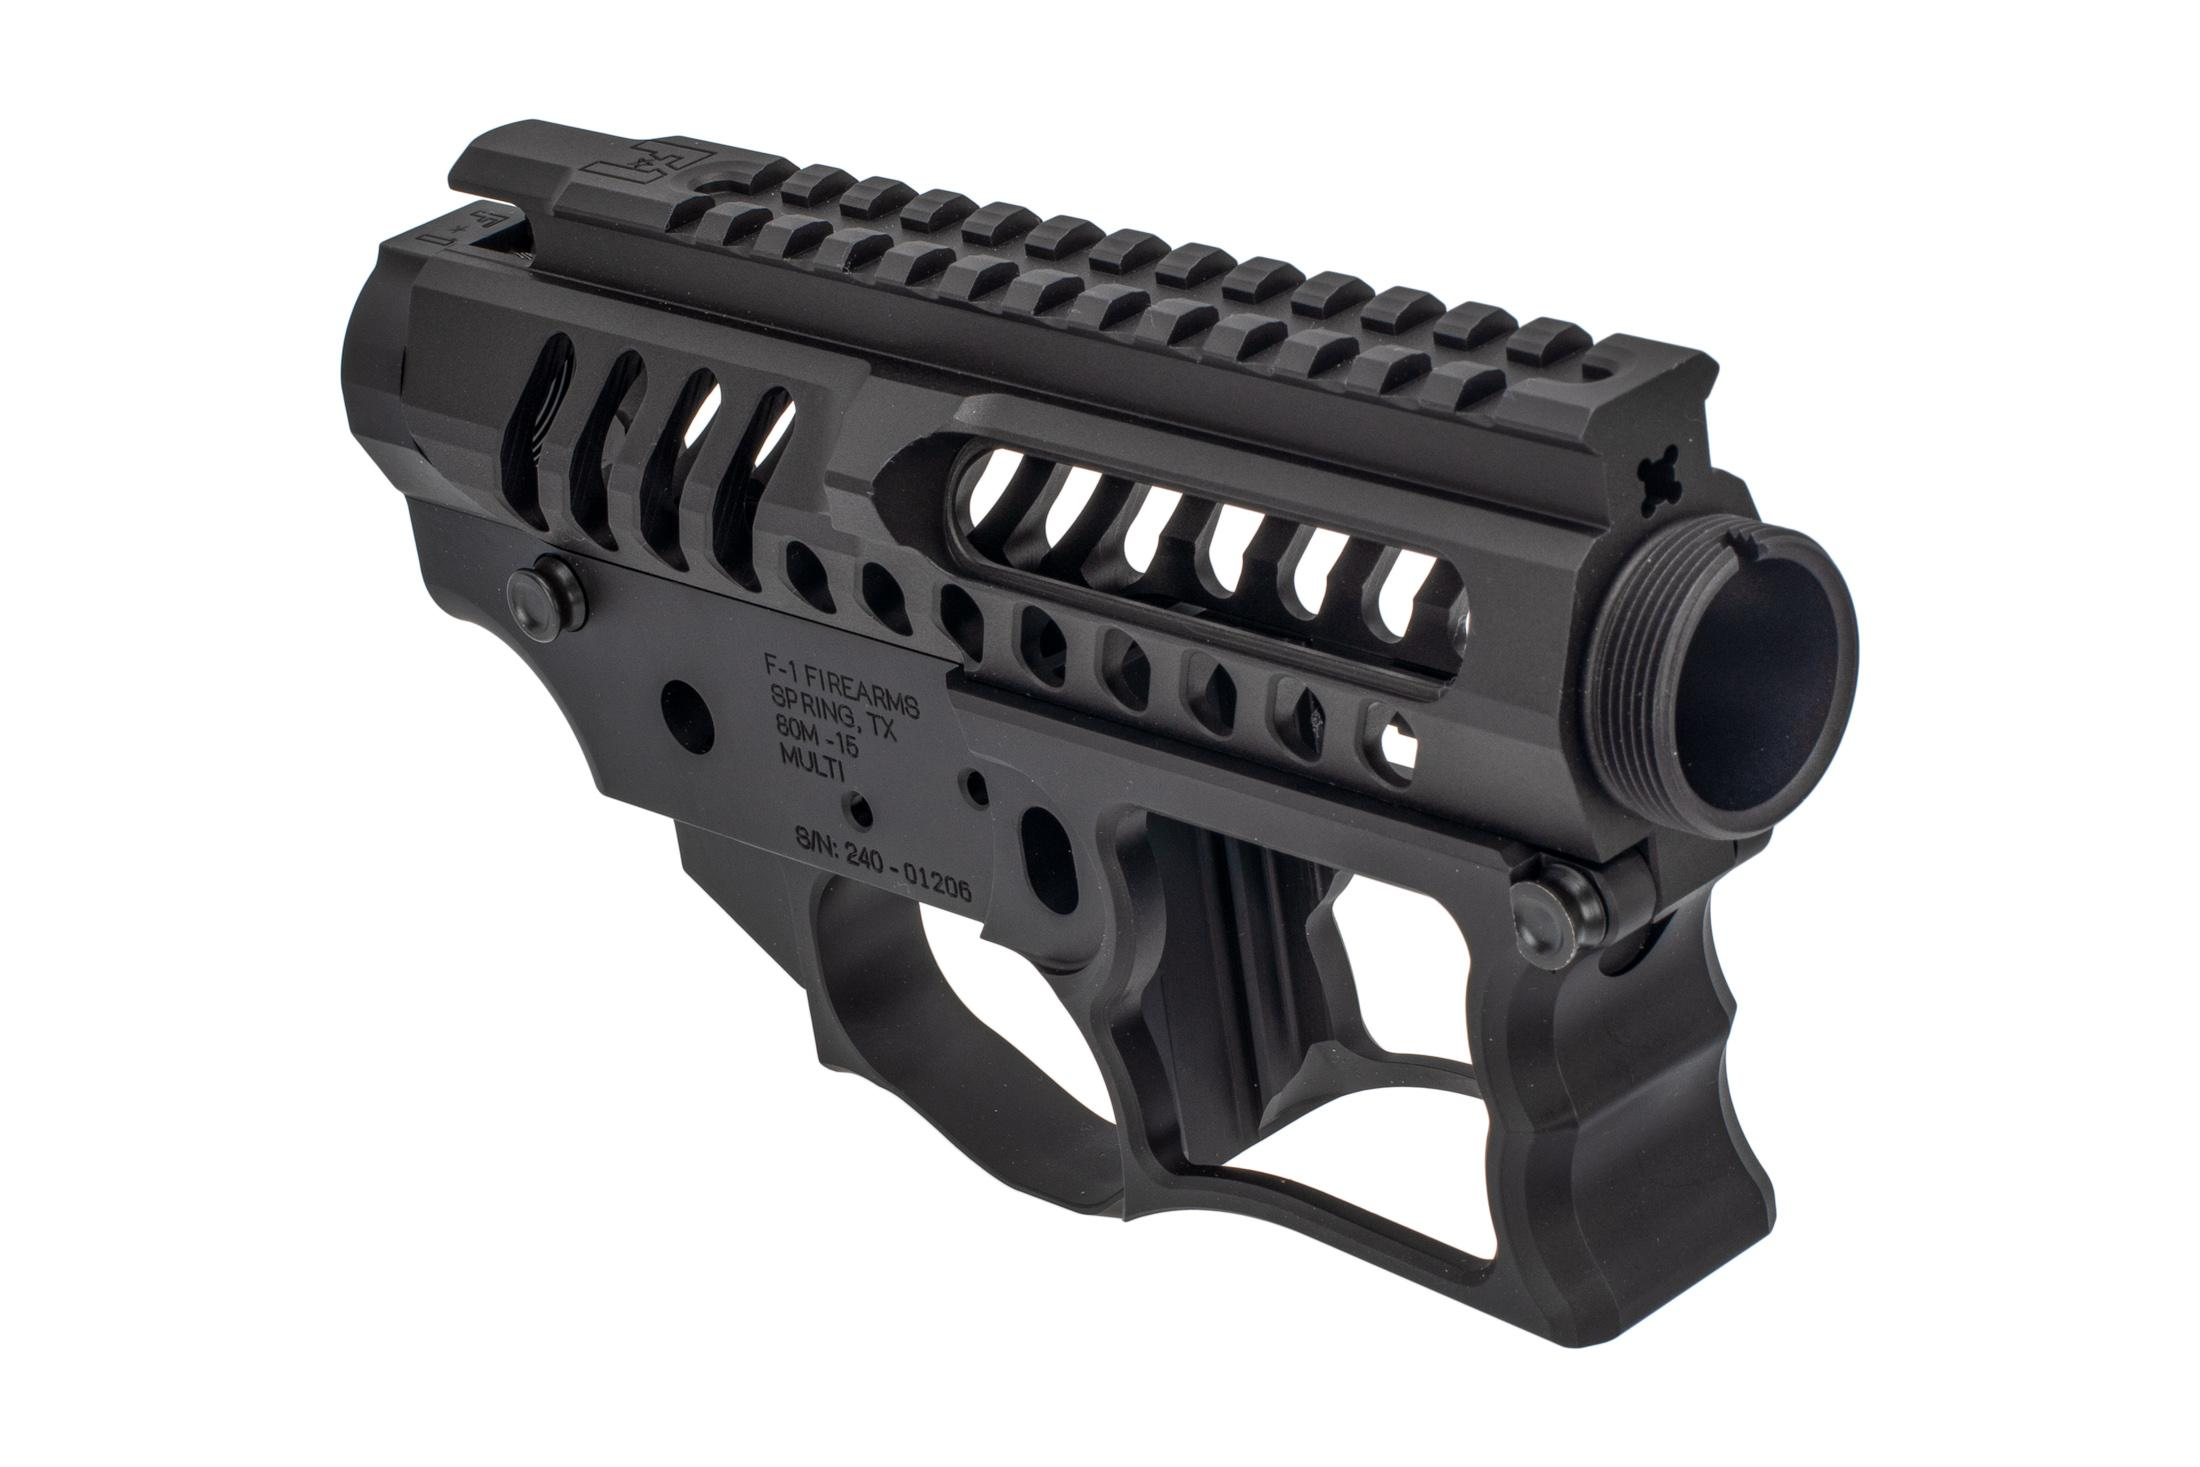 F1 Firearms UDR-15 Skeletonized AR15 receiver set is machined from a billet of 7075-T6 aluminum